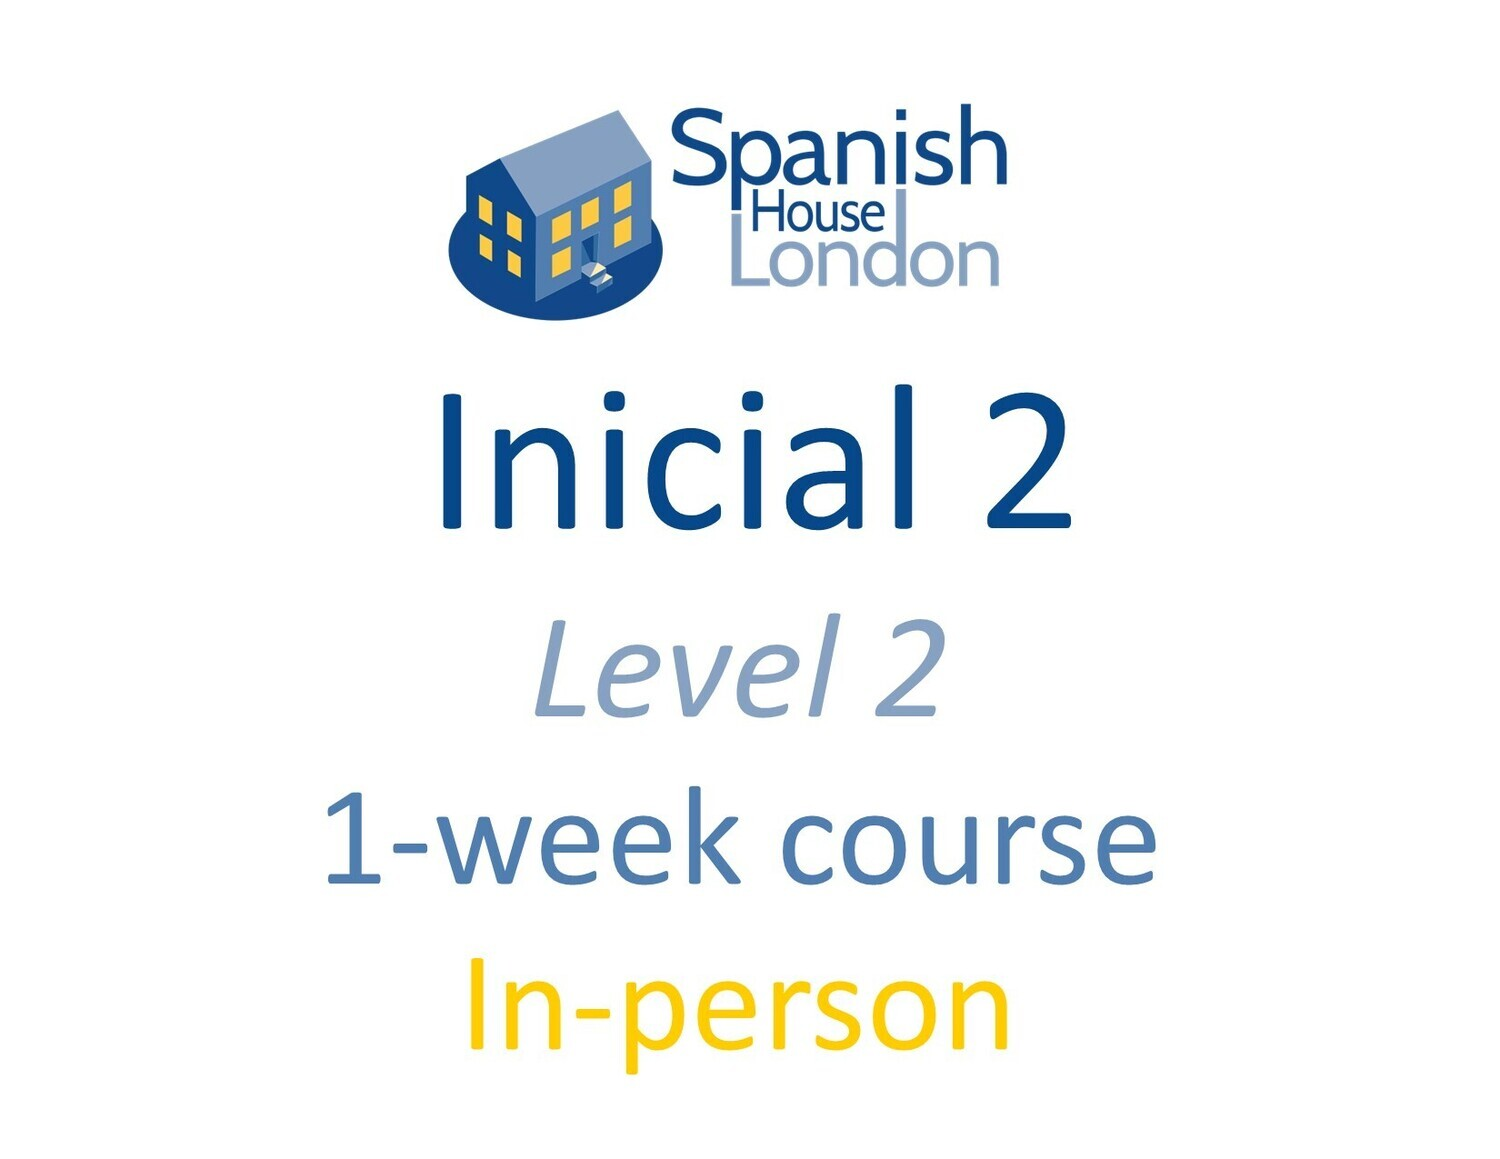 One-Week Intensive Inicial 2 Course starting on 4th October 10am in Clapham North